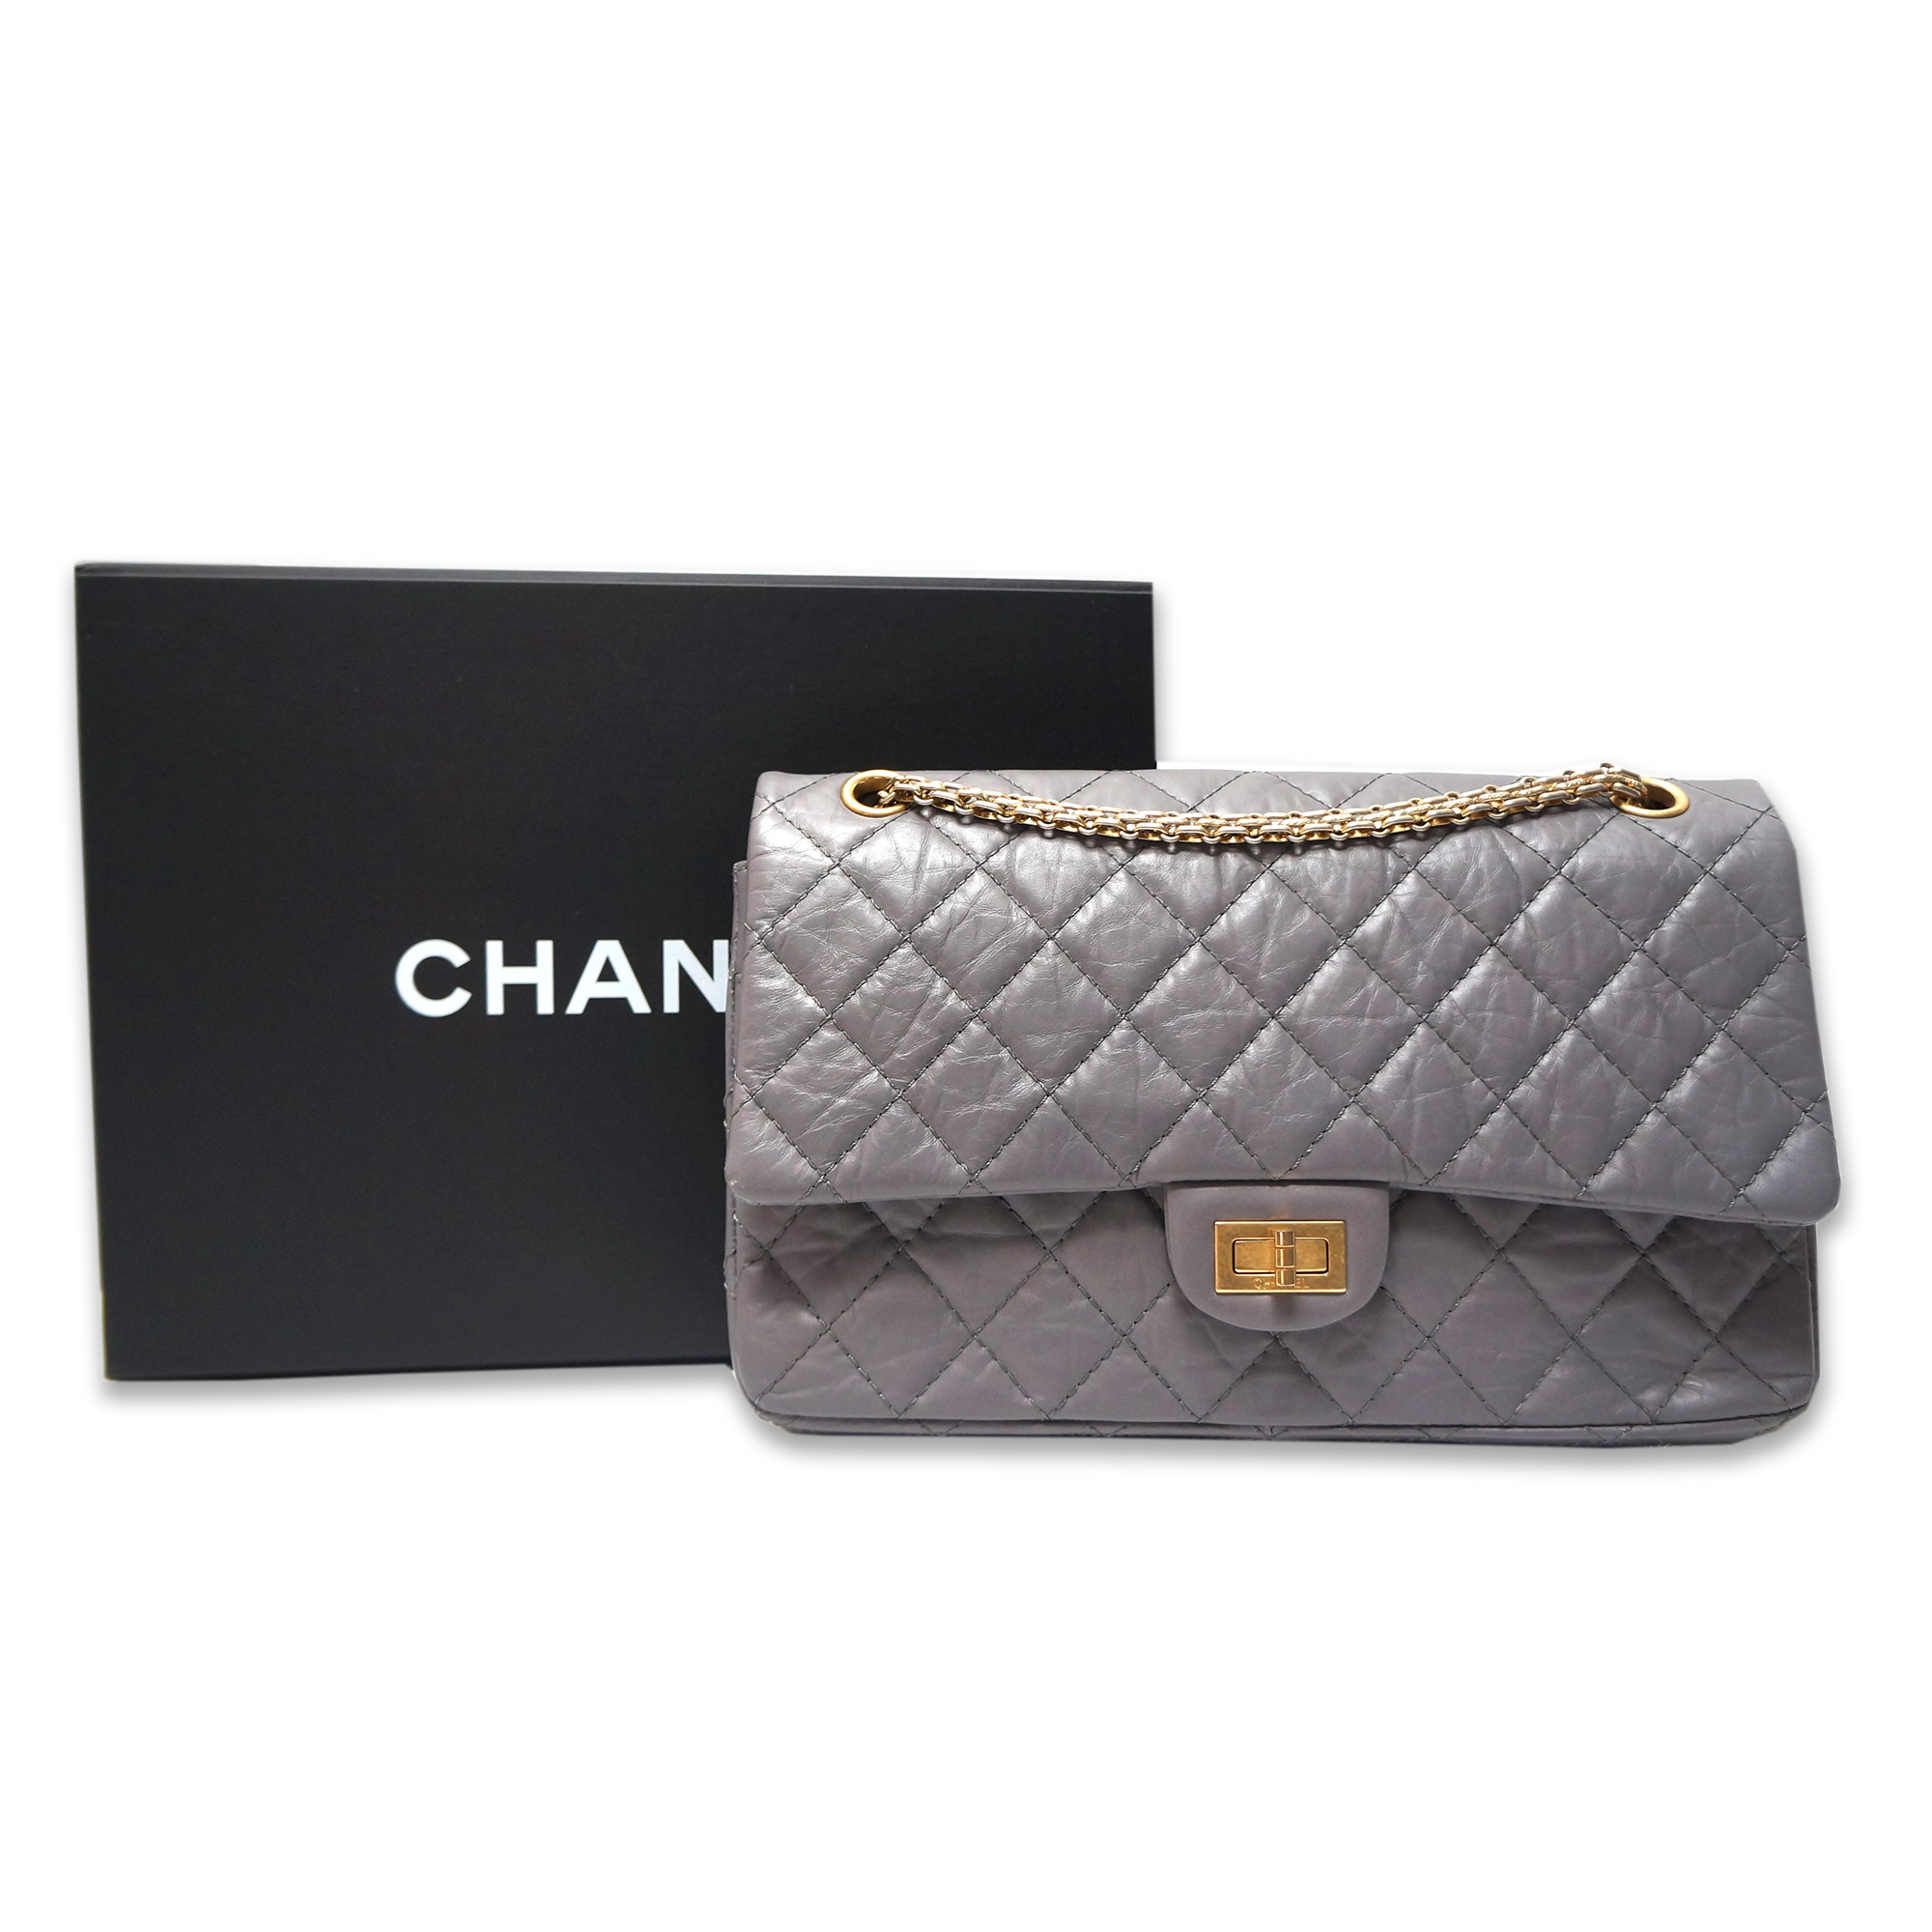 87285643d6ed Chanel 2.55 Reissue Flap Bag 226 Grey Aged Leather Gold Hardware ...